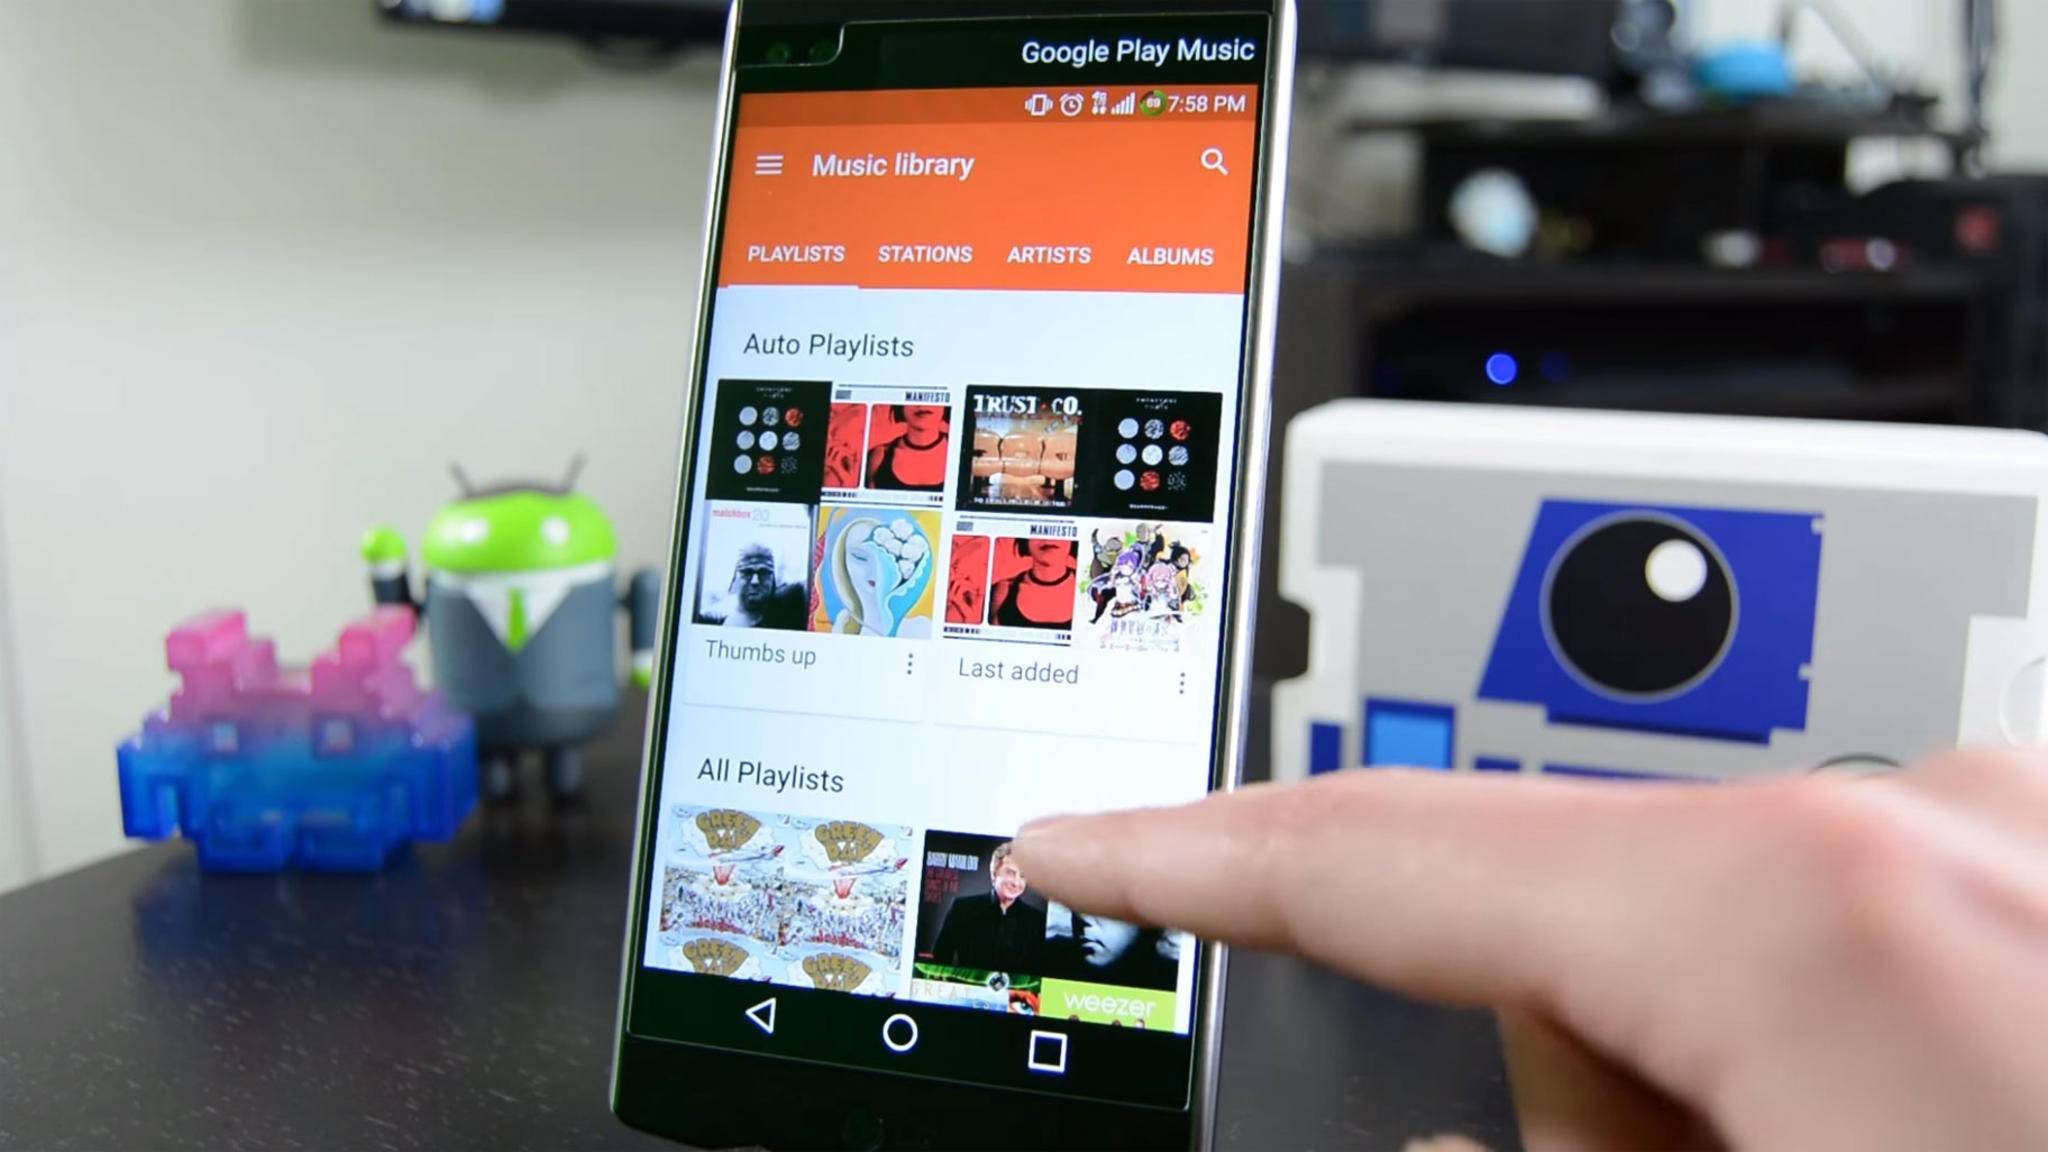 YouTube Remix soll Google Play Music ablösen.